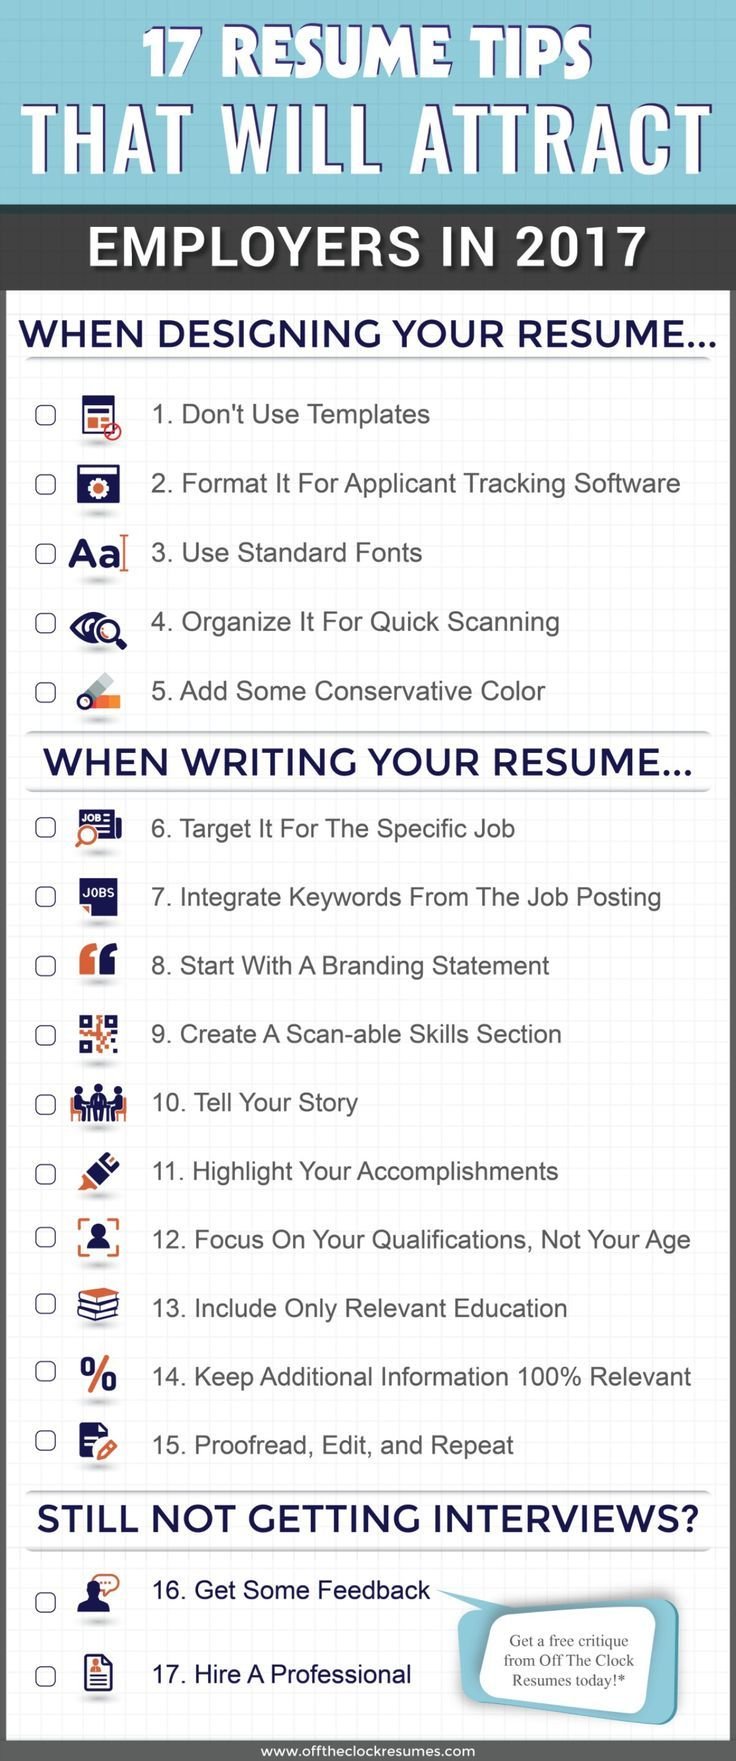 best images about new profession resume tips 17 resume tips that will attract employers in 2017 infographic off the clock resumes